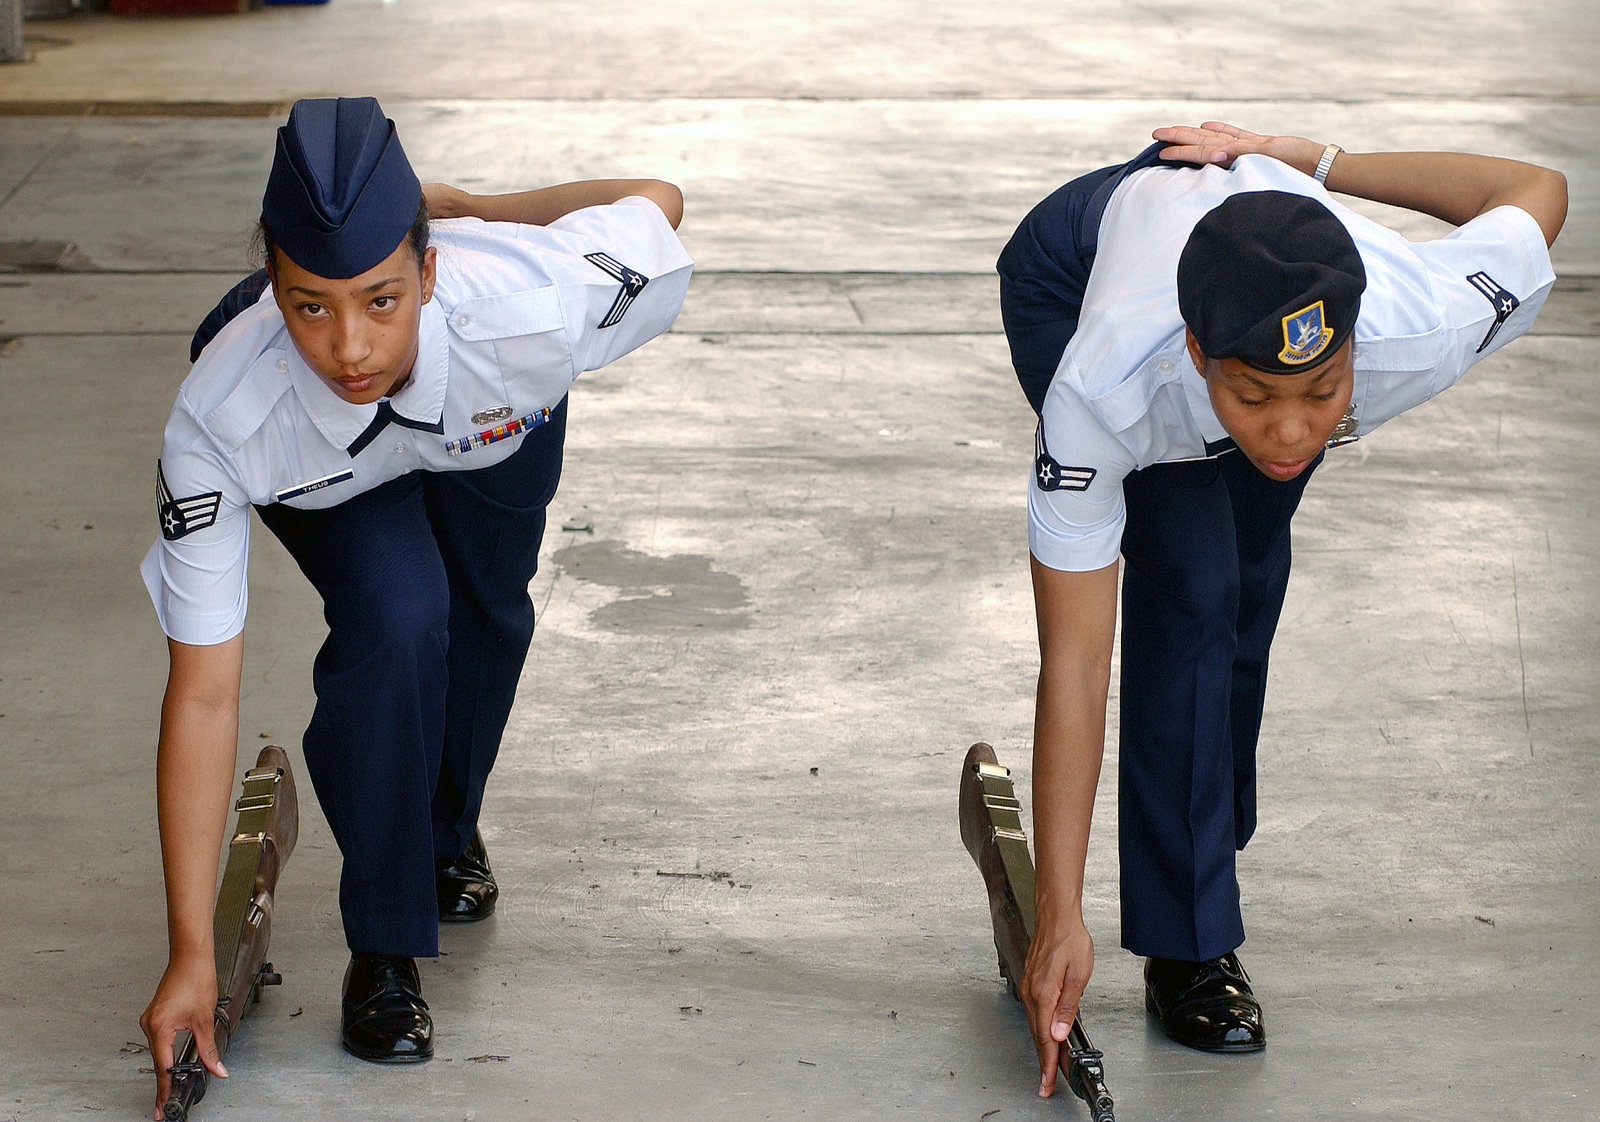 US Air Force (USAF) SENIOR AIRMAN (SRA) On Theus (left), 31st Supply Squadron and USAF AIRMAN First Class (A1C) Candace Sharp, 31st Security Forces Squadron (SFS), both members of the Honor Guard Team, participate in a rifle drill practice held at Aviano Air Base (AB), Italy